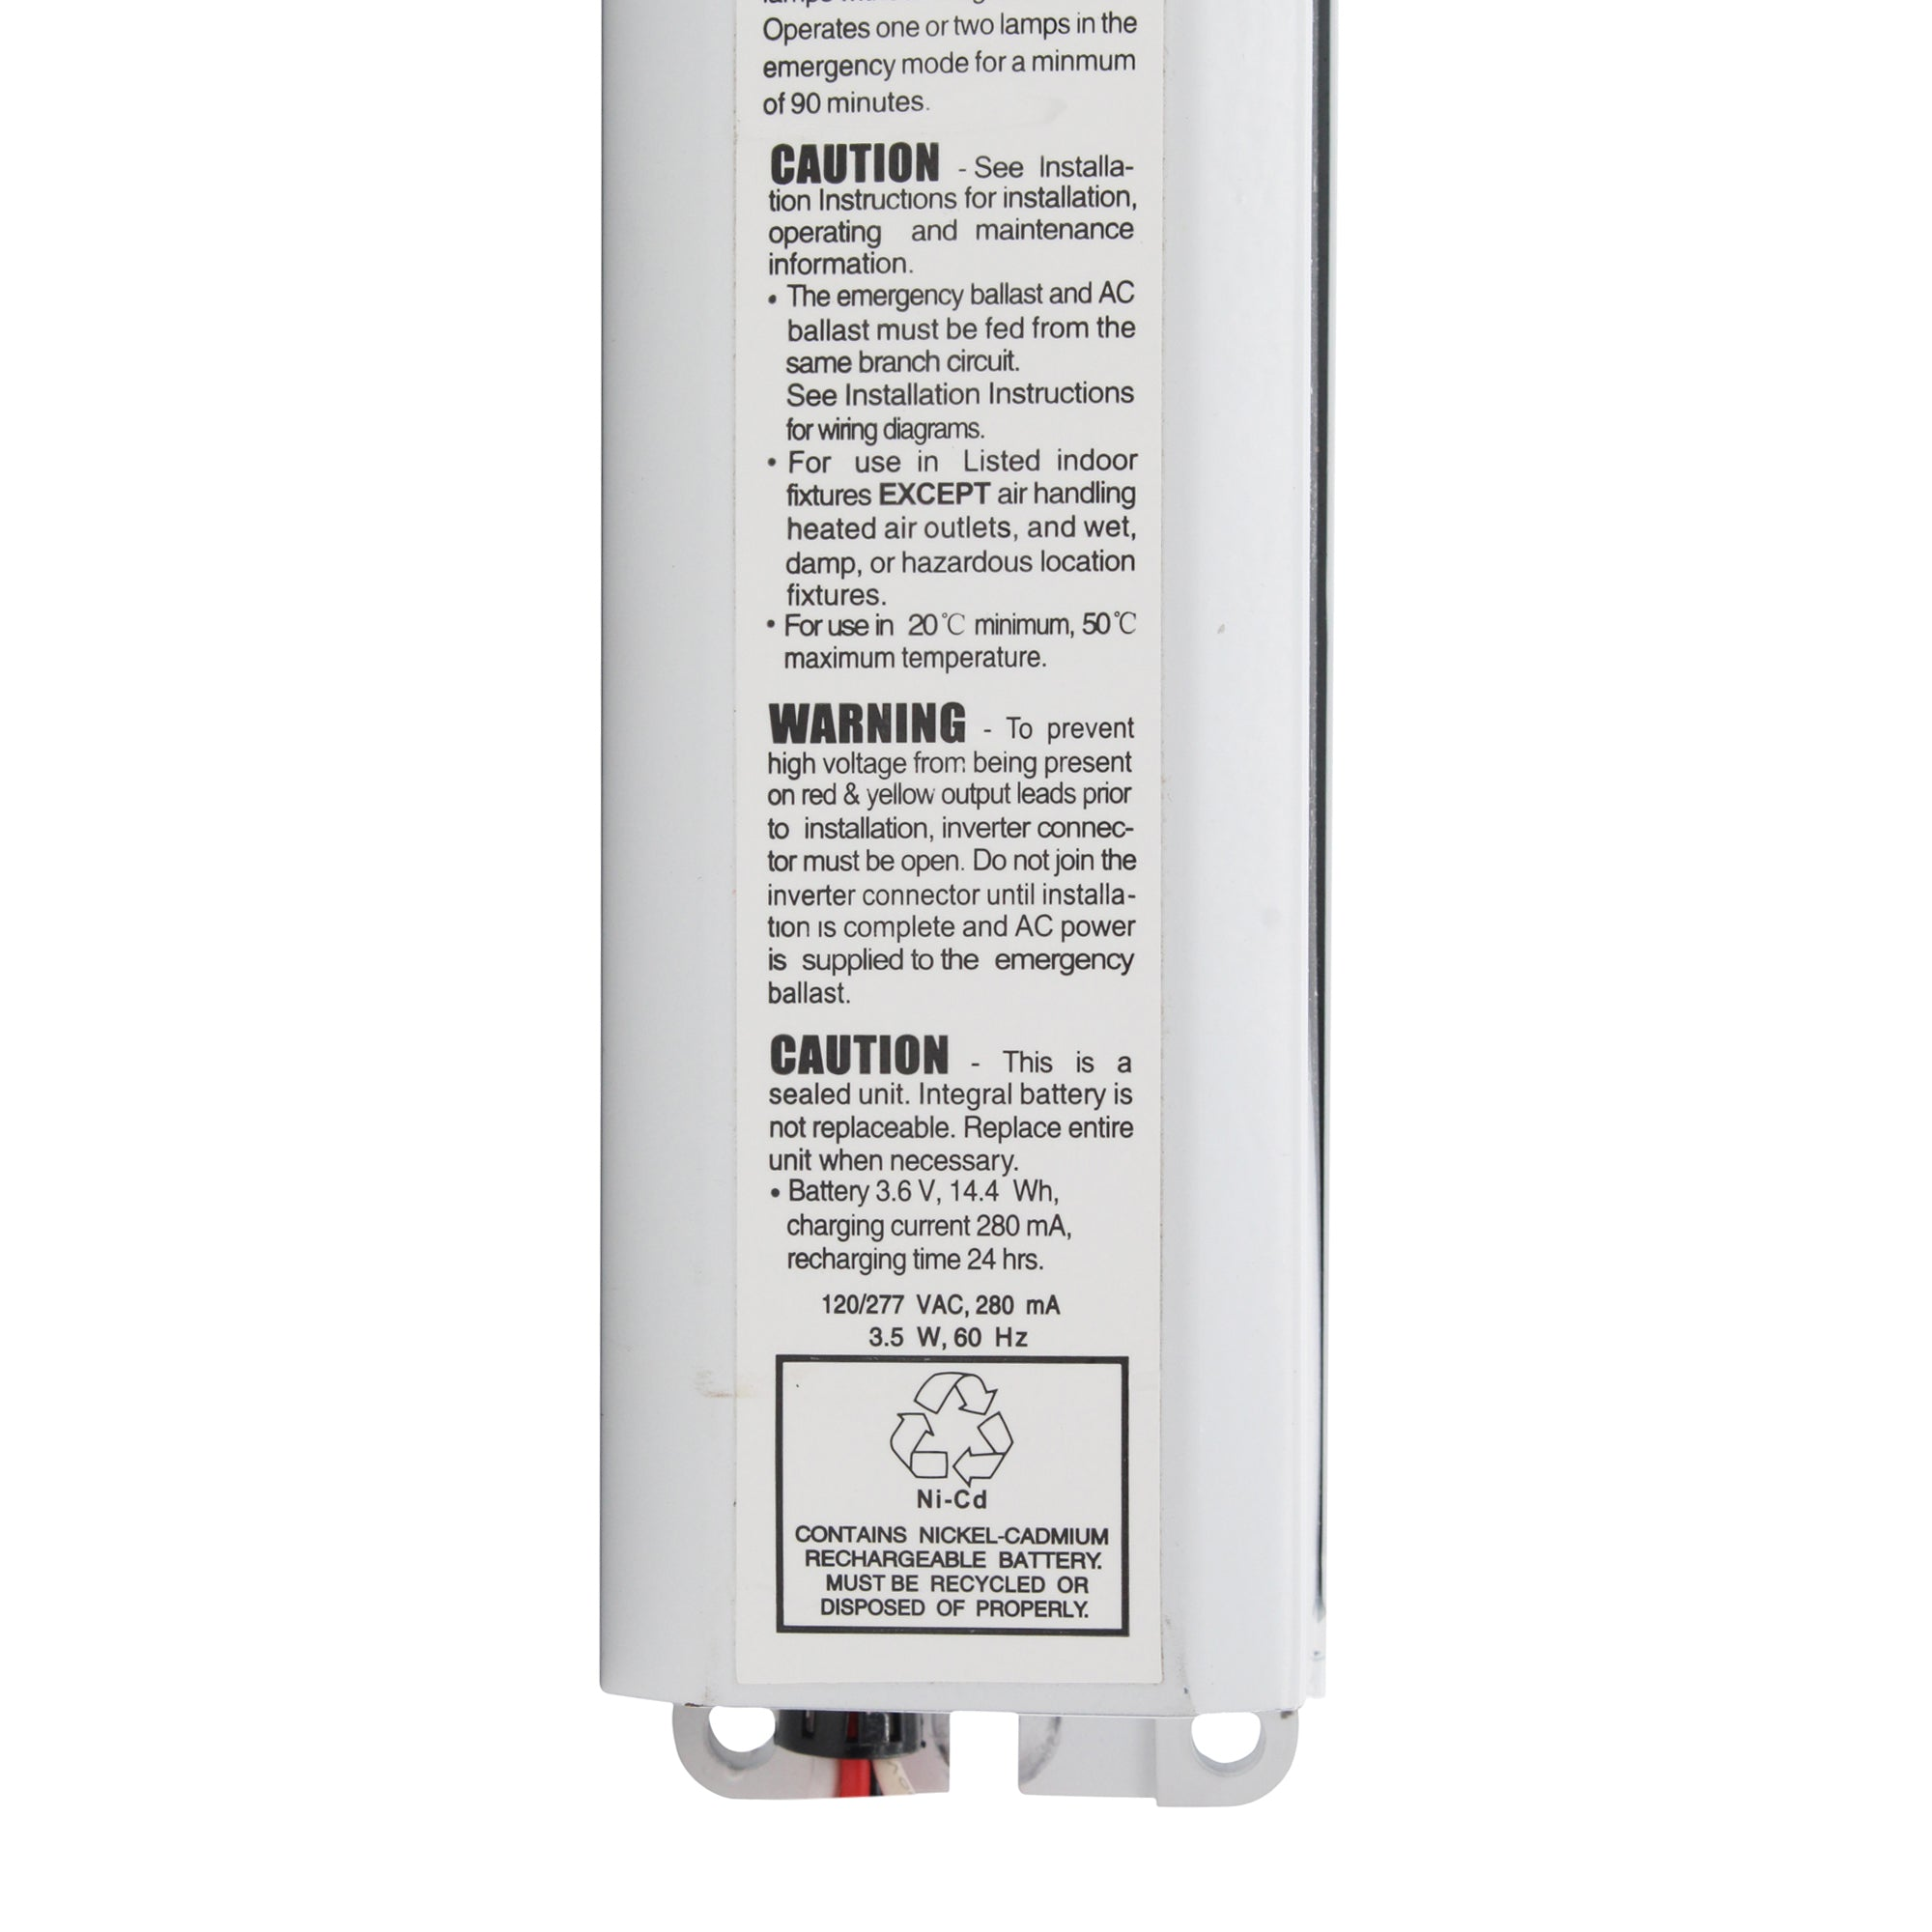 Swell Lithonia Led Light Ballast Wiring Diagram Wiring Diagram Wiring Cloud Hisonuggs Outletorg